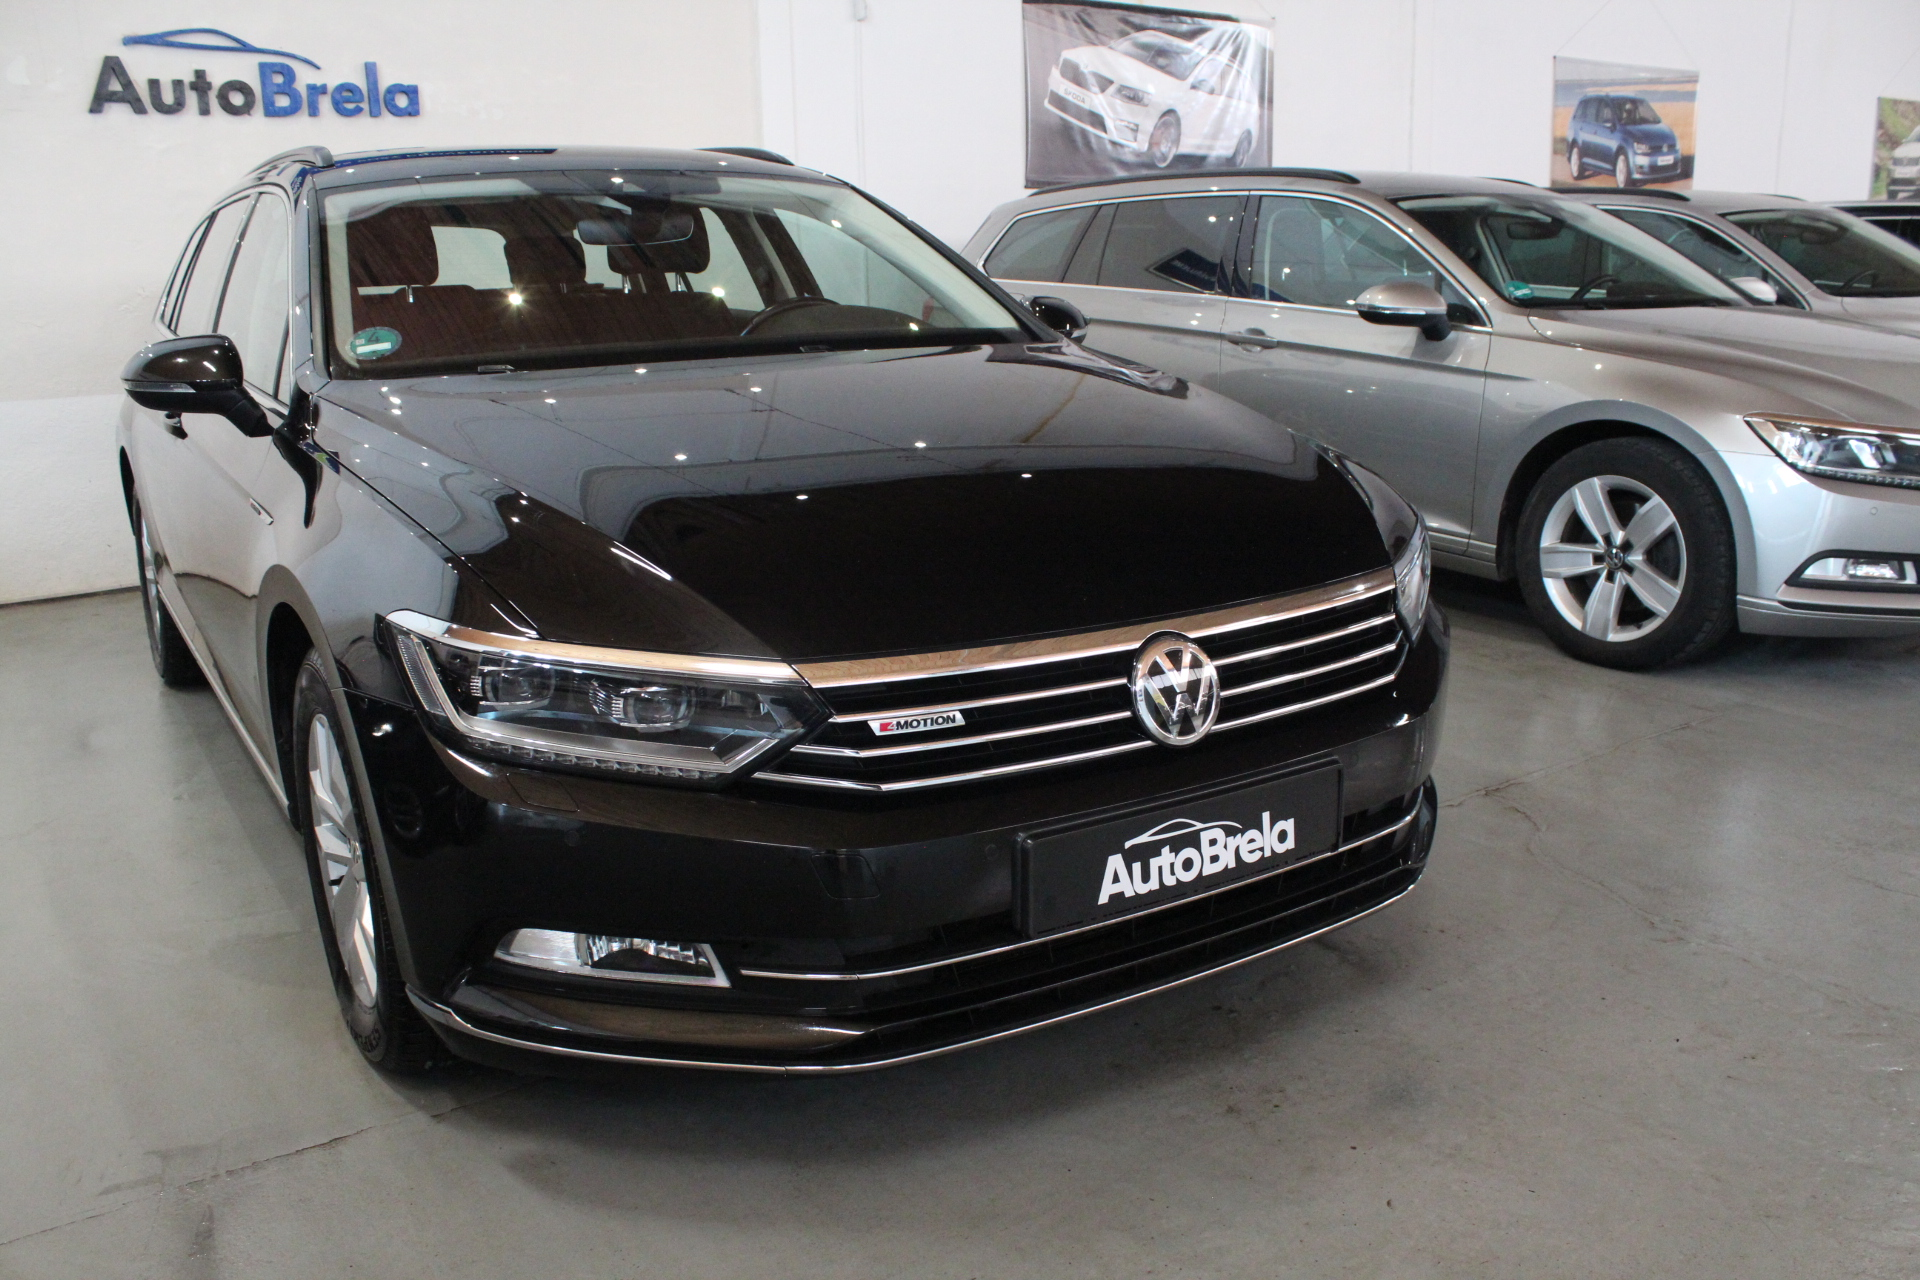 VW Passat B8 2.0 TDI DSG Highline 4Motion 140kW FULL LED Model 2018 - AutoBrela obrázek